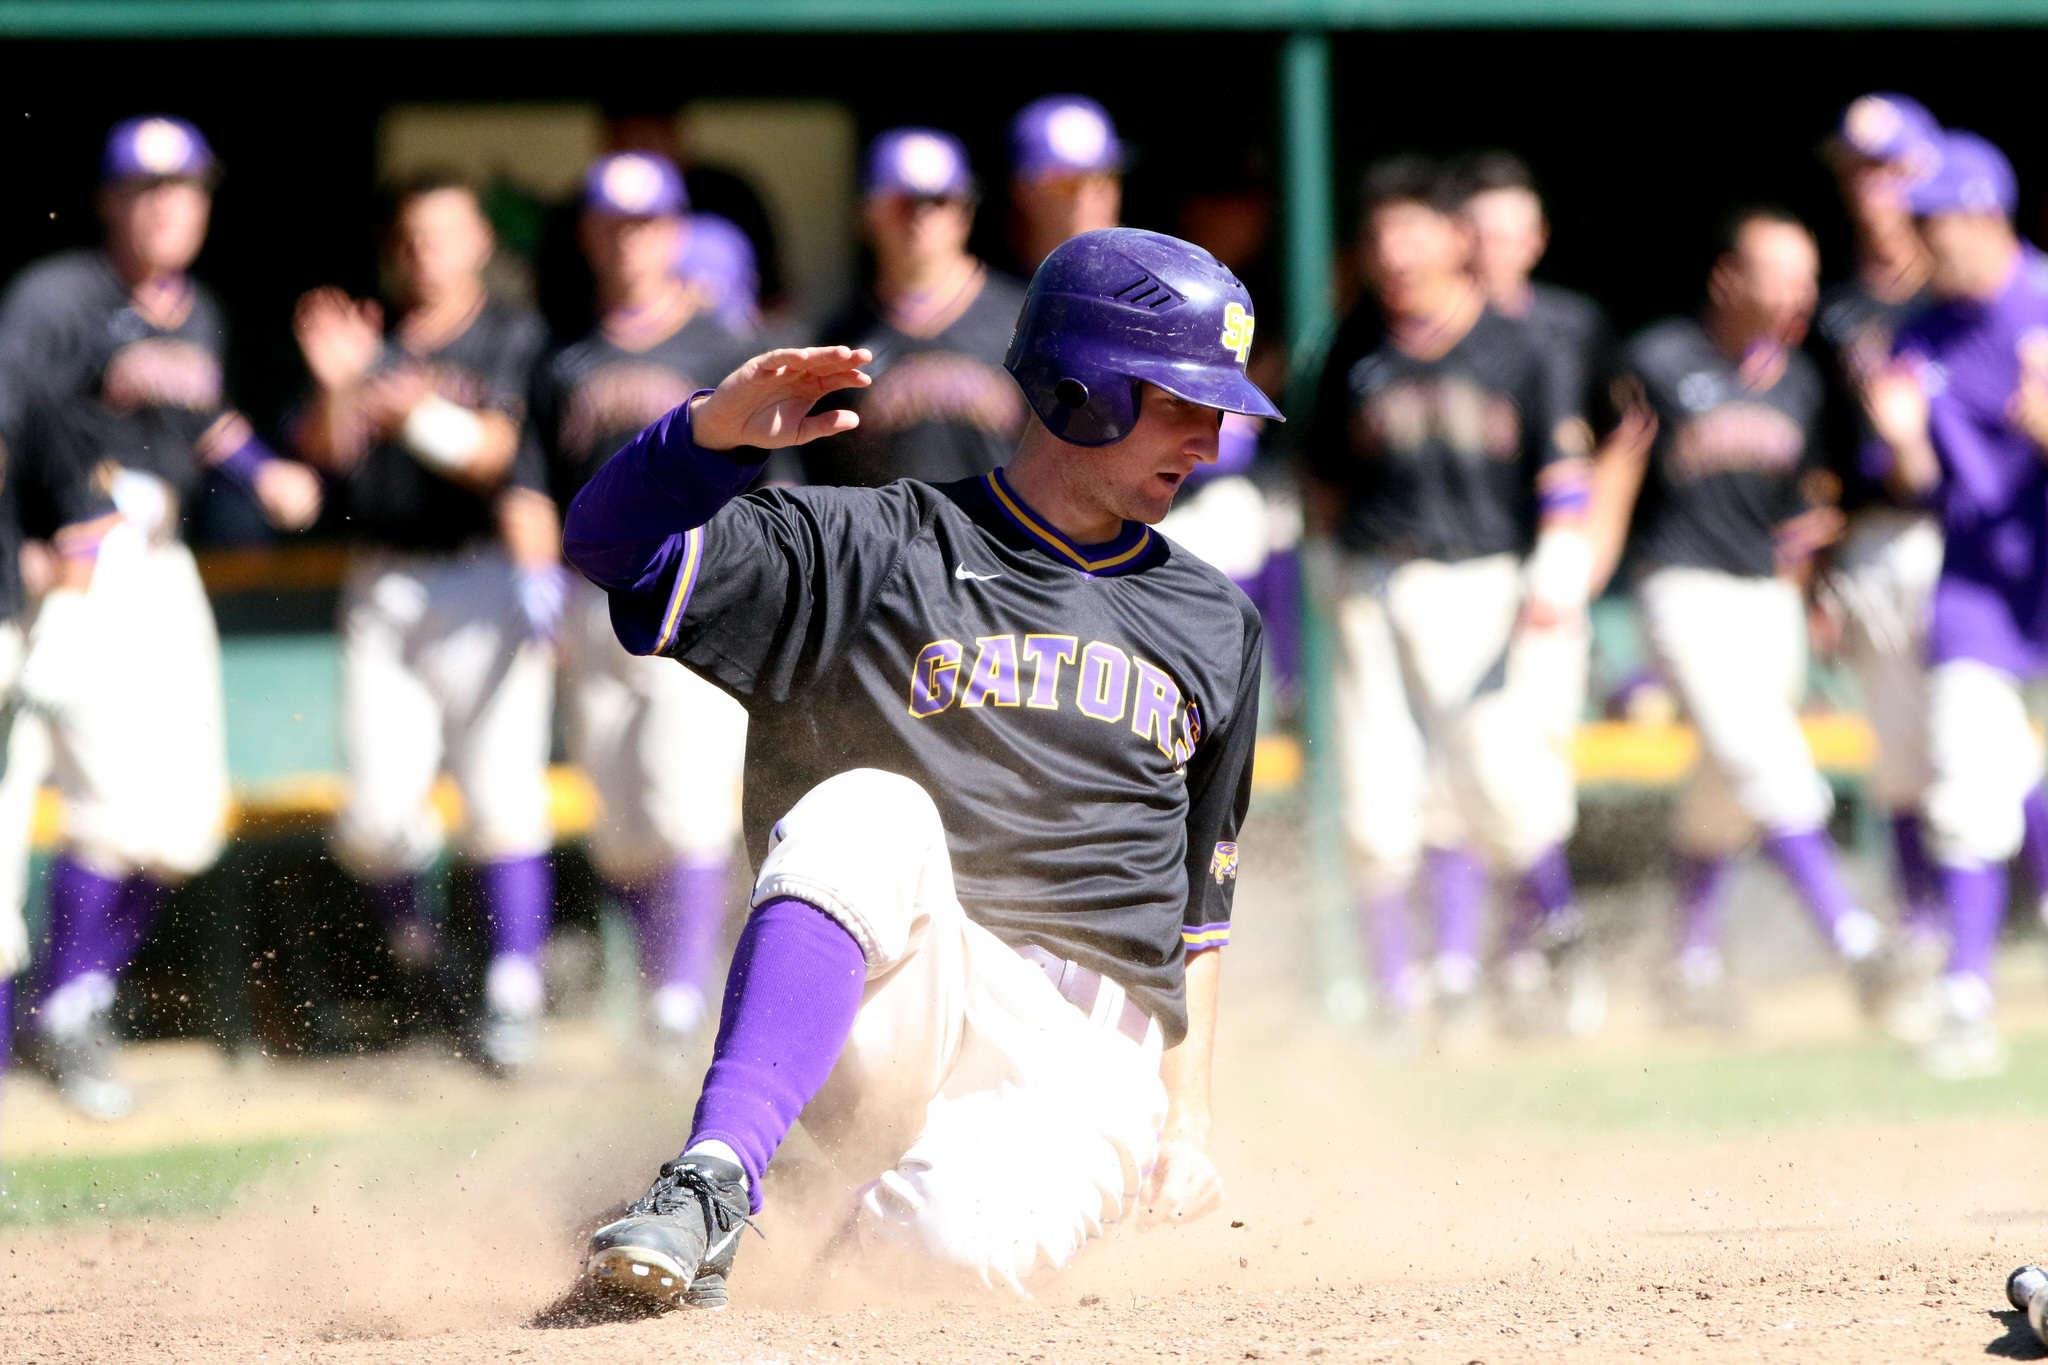 SF State Gator Will Hein (21) slides in for a homerun during Sunday's game against Cal State L.A Golden Eagles. (Marlene Sanchez / Xpress)